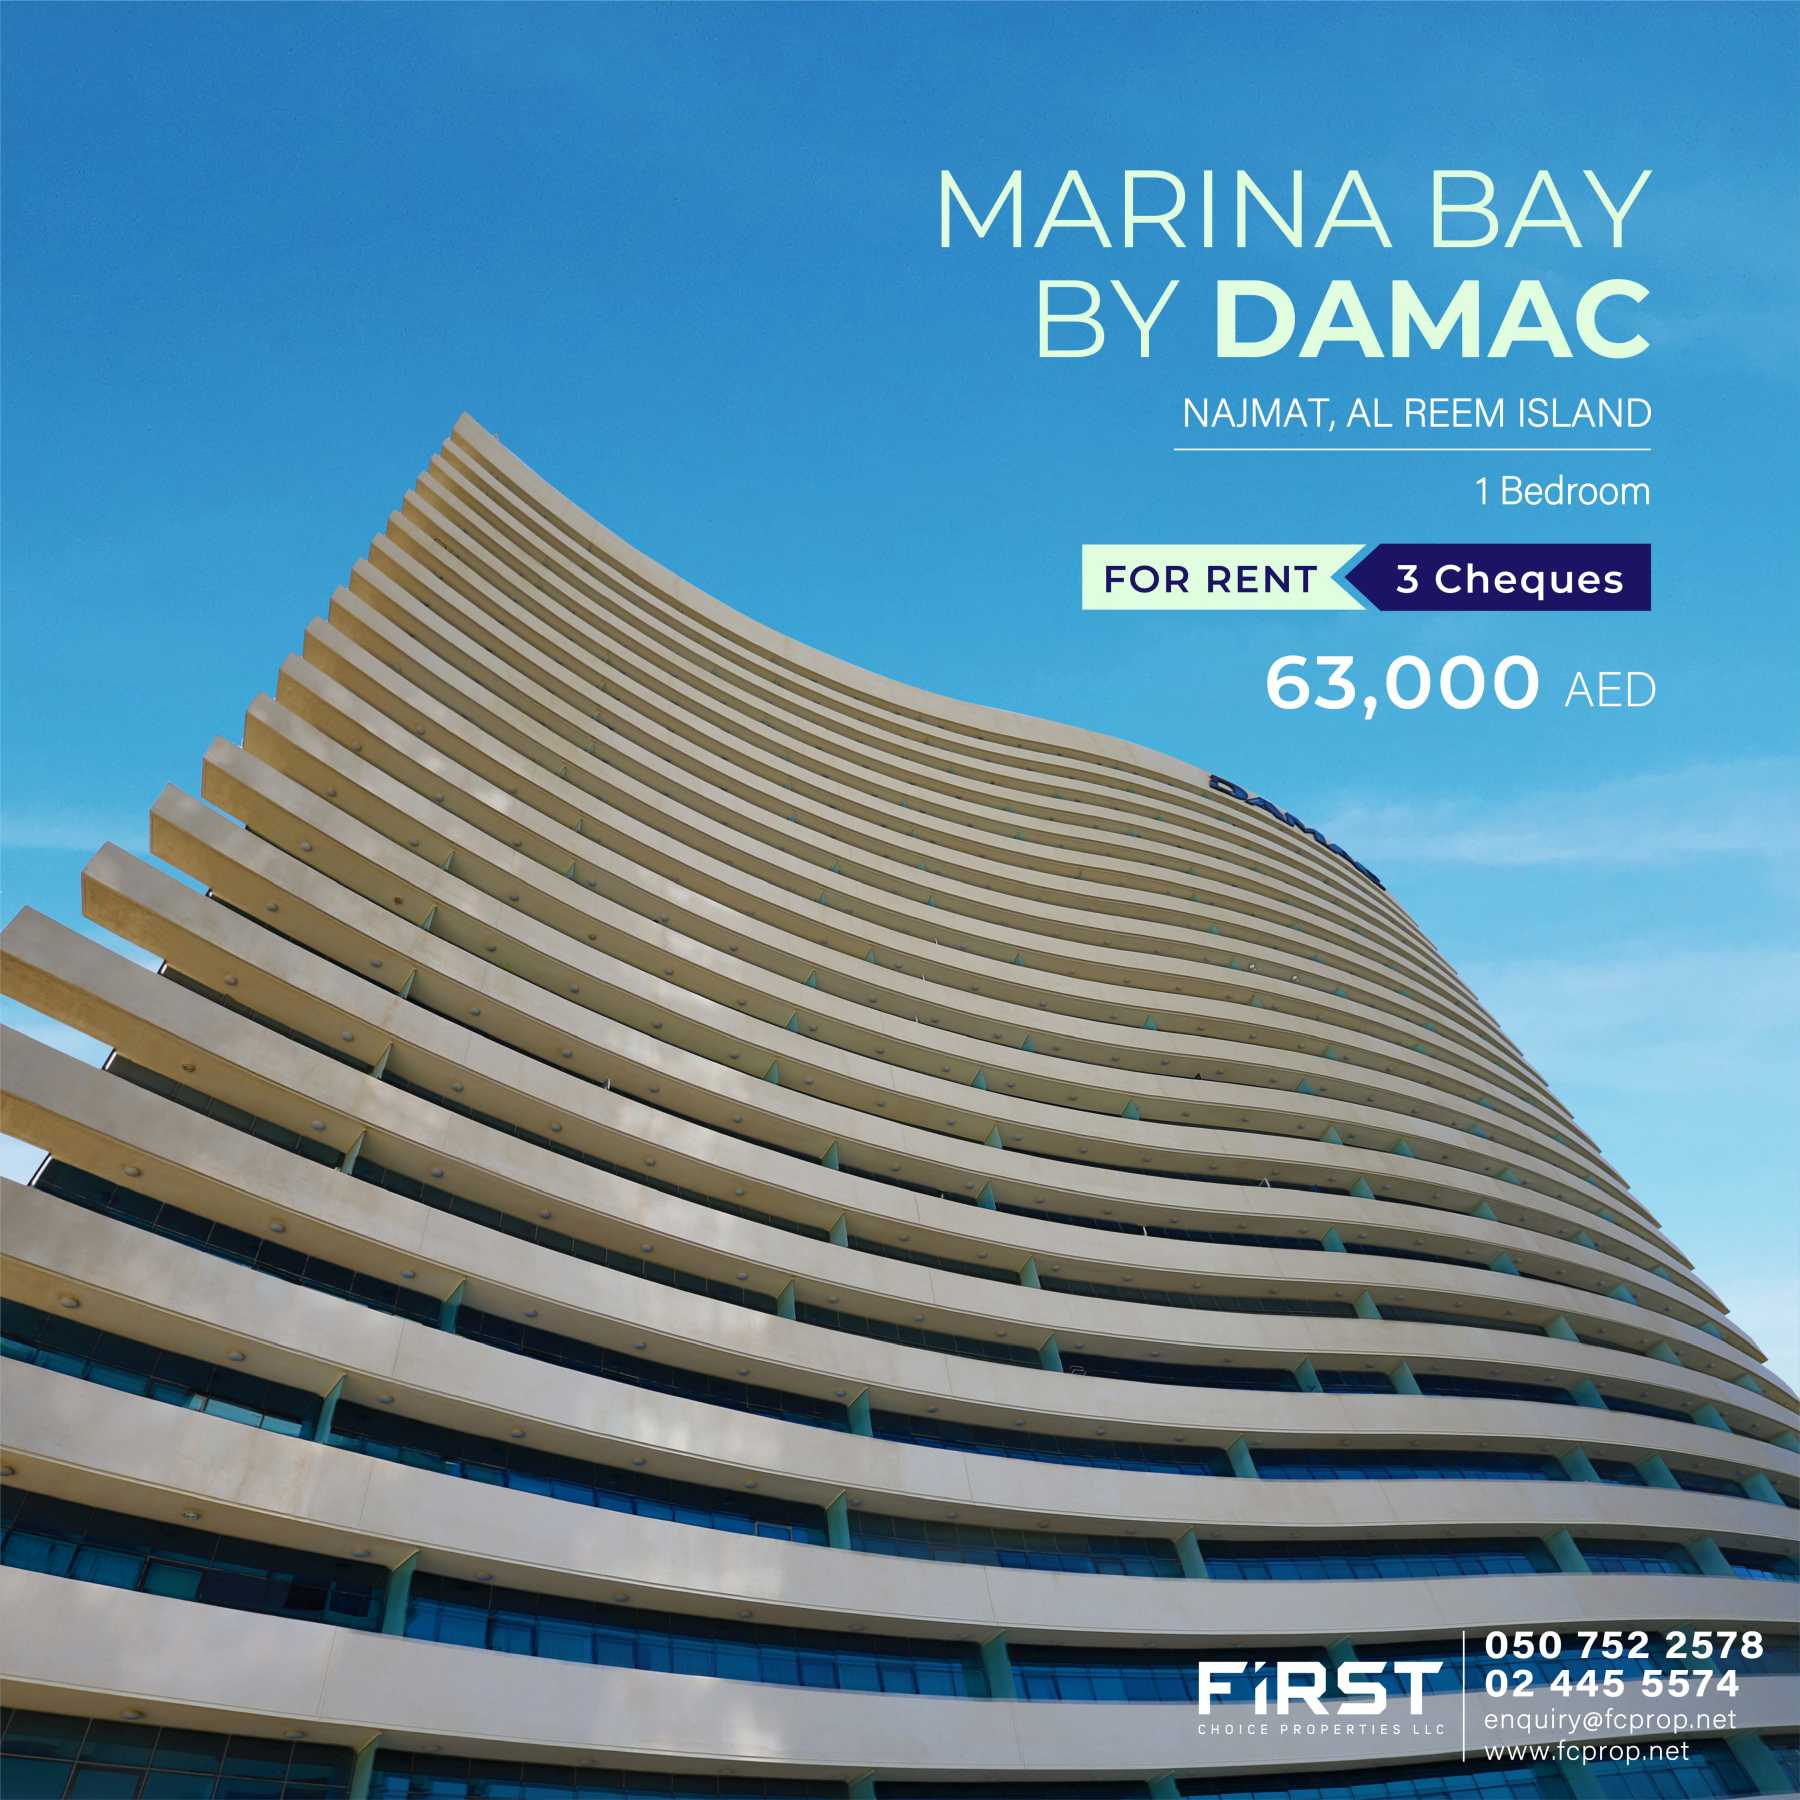 Marina bay by Damac Ad.jpg